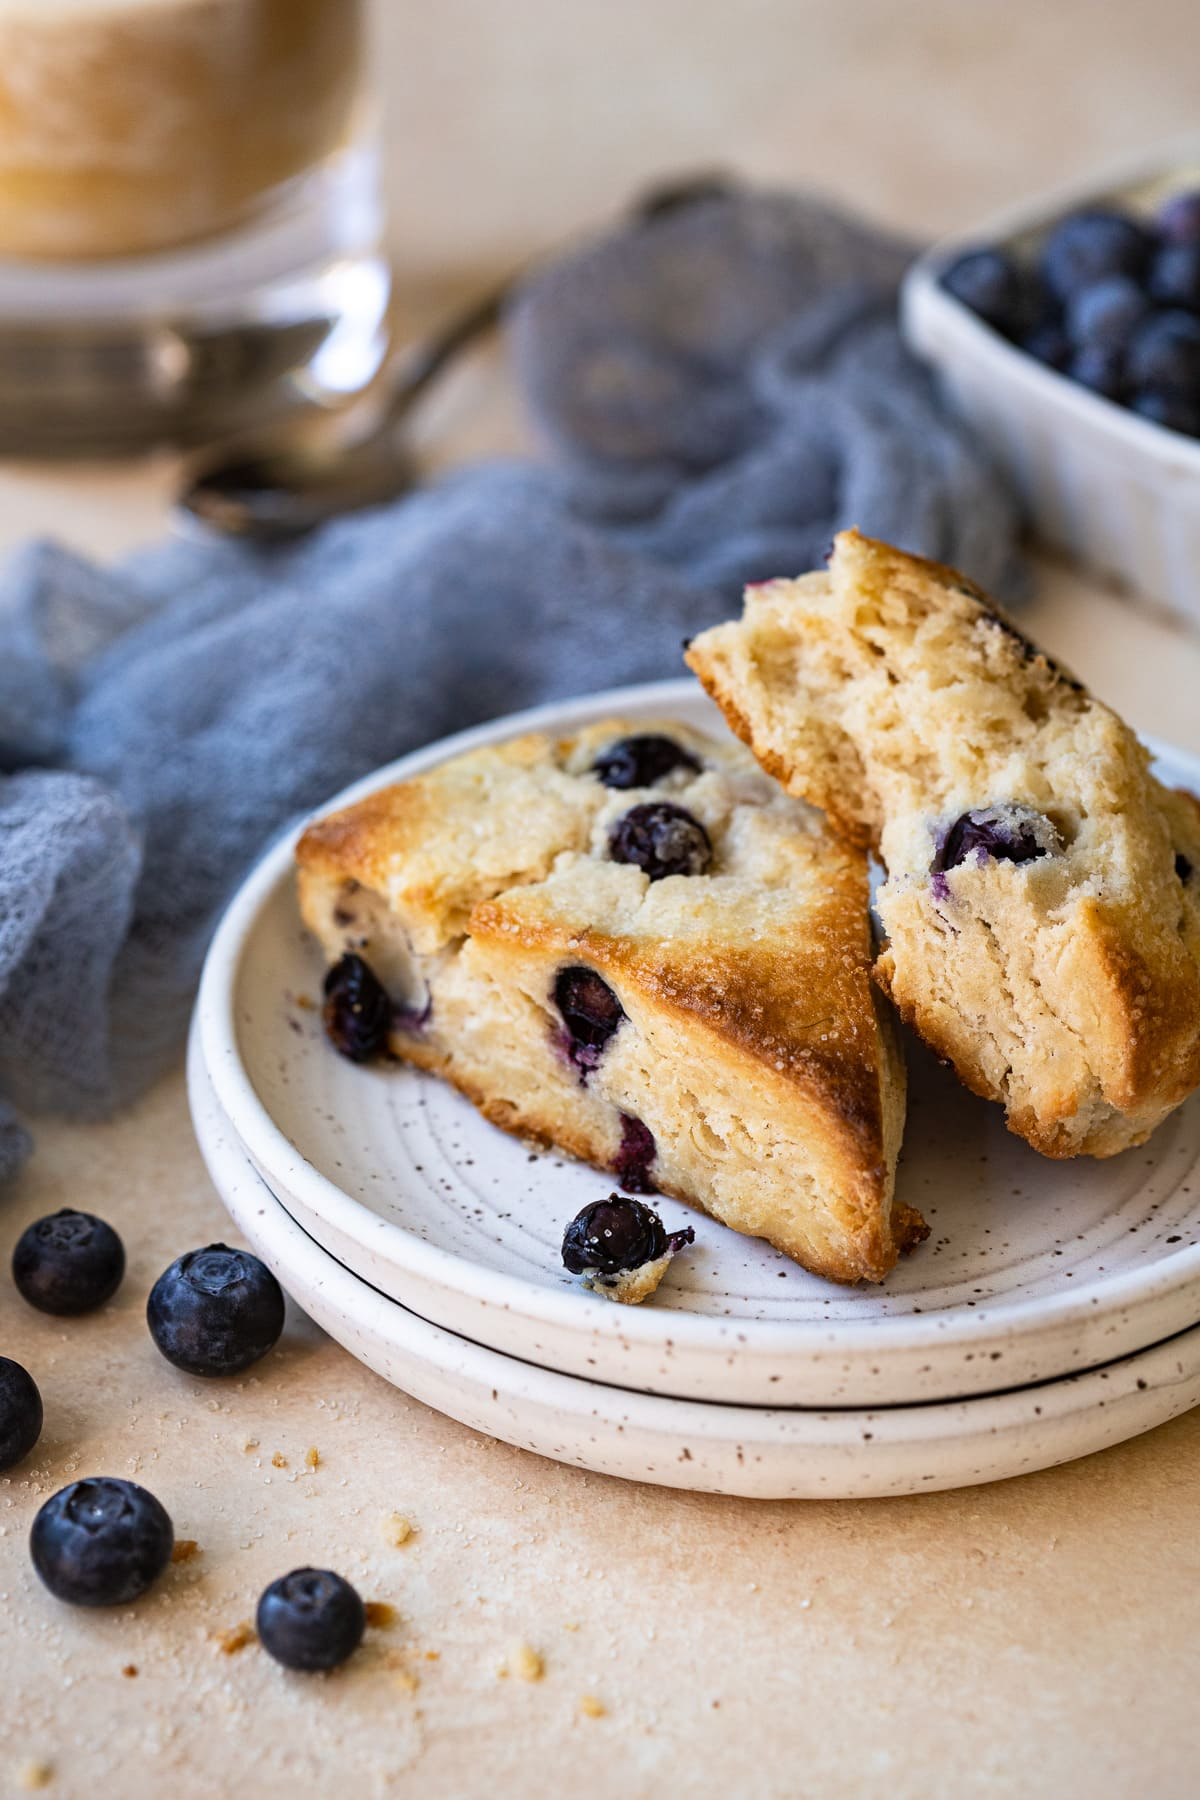 Two blueberry scones on stacked plates, with iced coffee in the background.